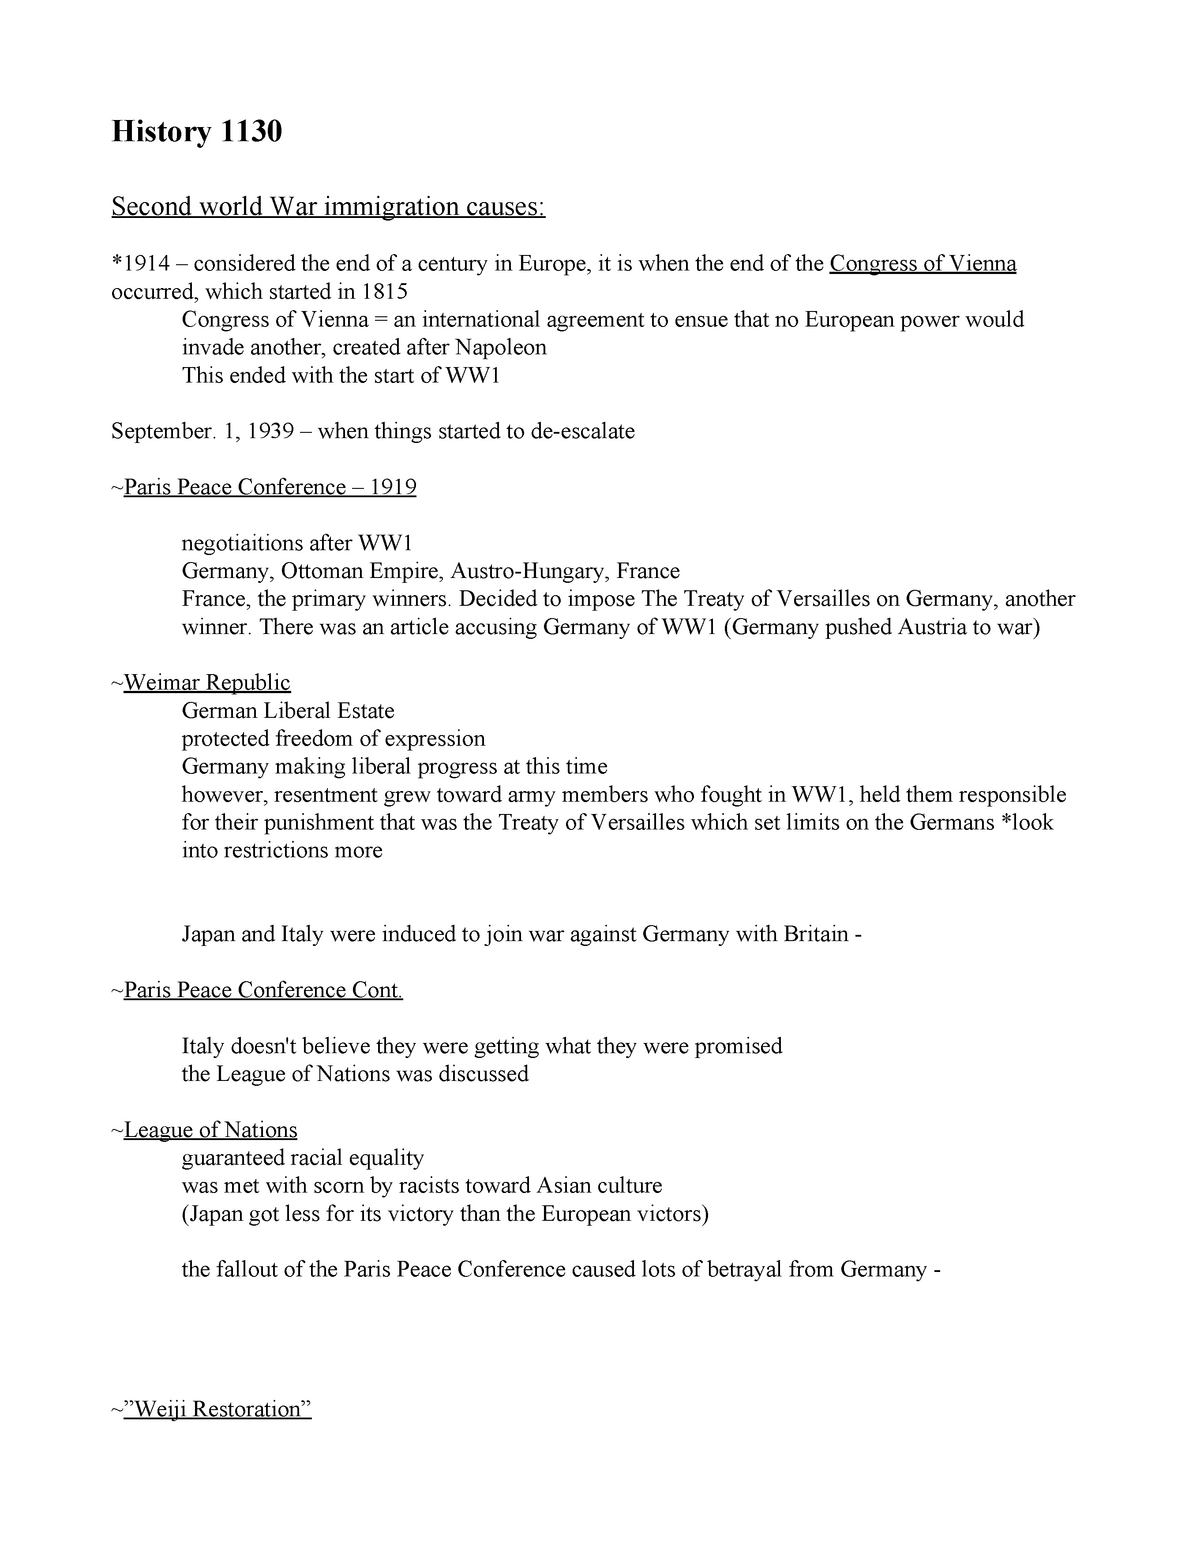 History 1130 Notes - HIST 1130: Modern History (1939 to